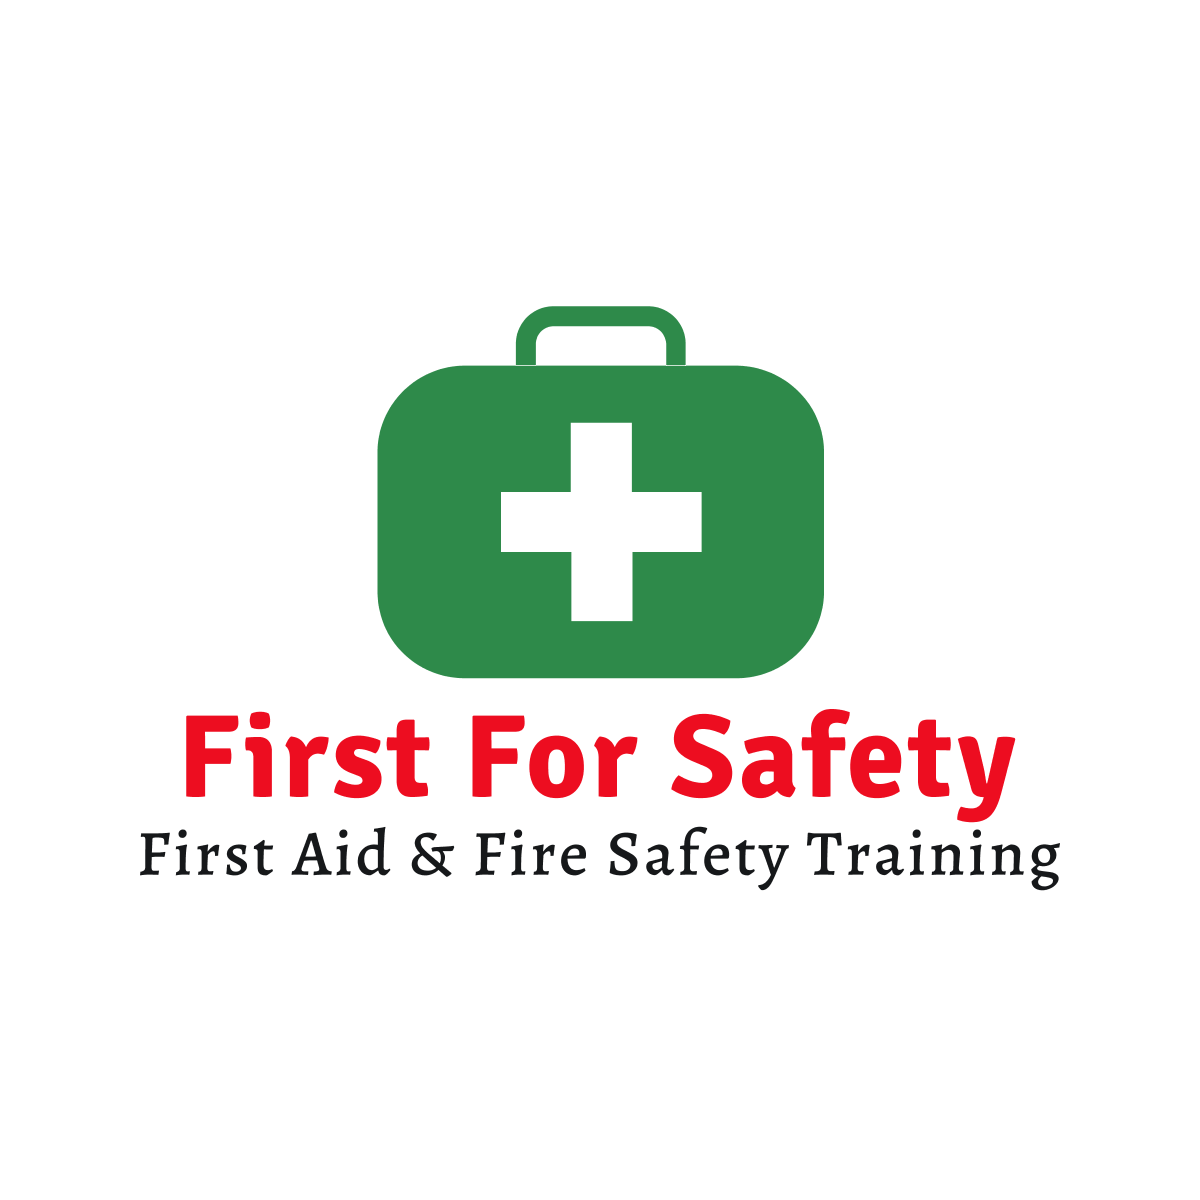 First for Safety Oxfordshire